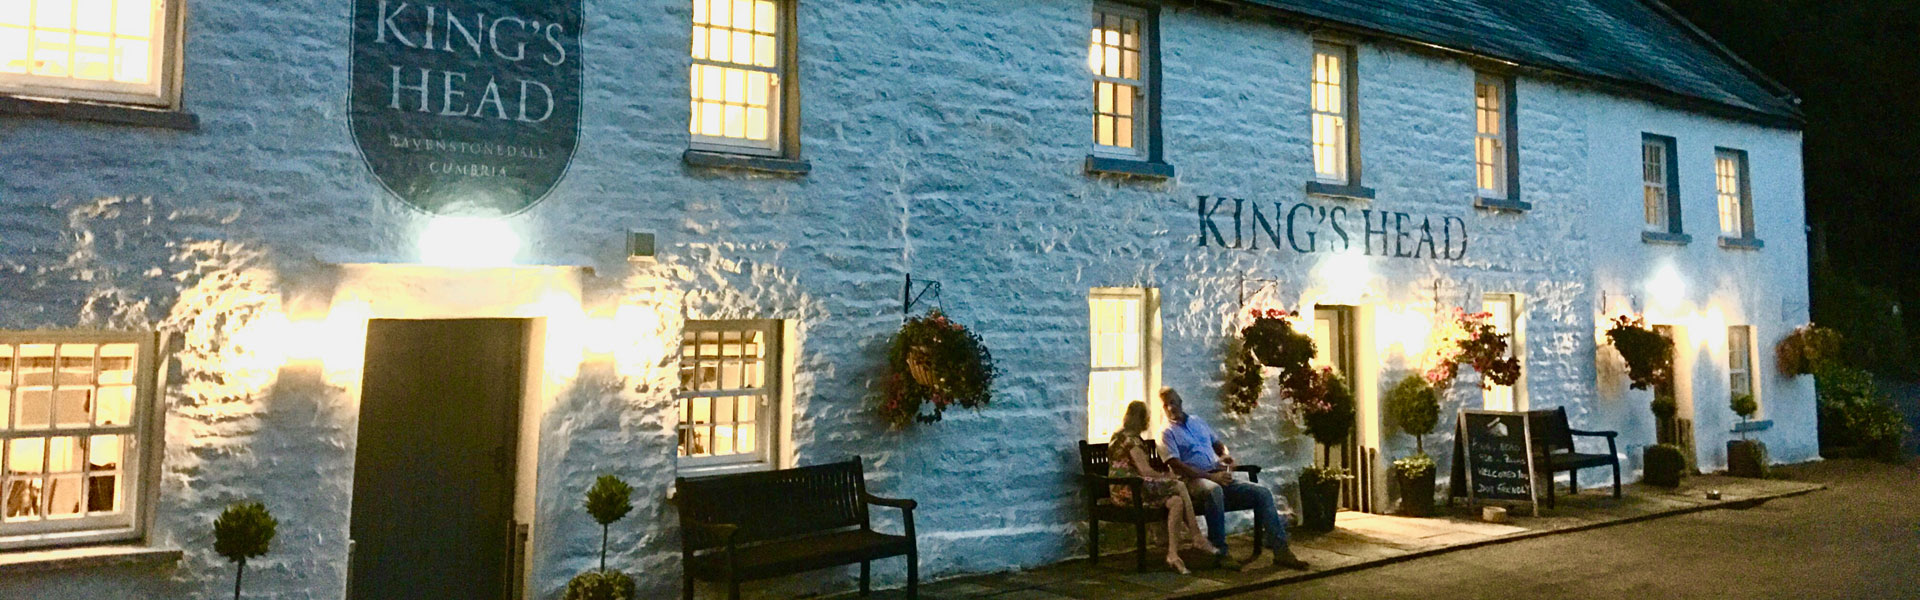 kings head ravenstonedale